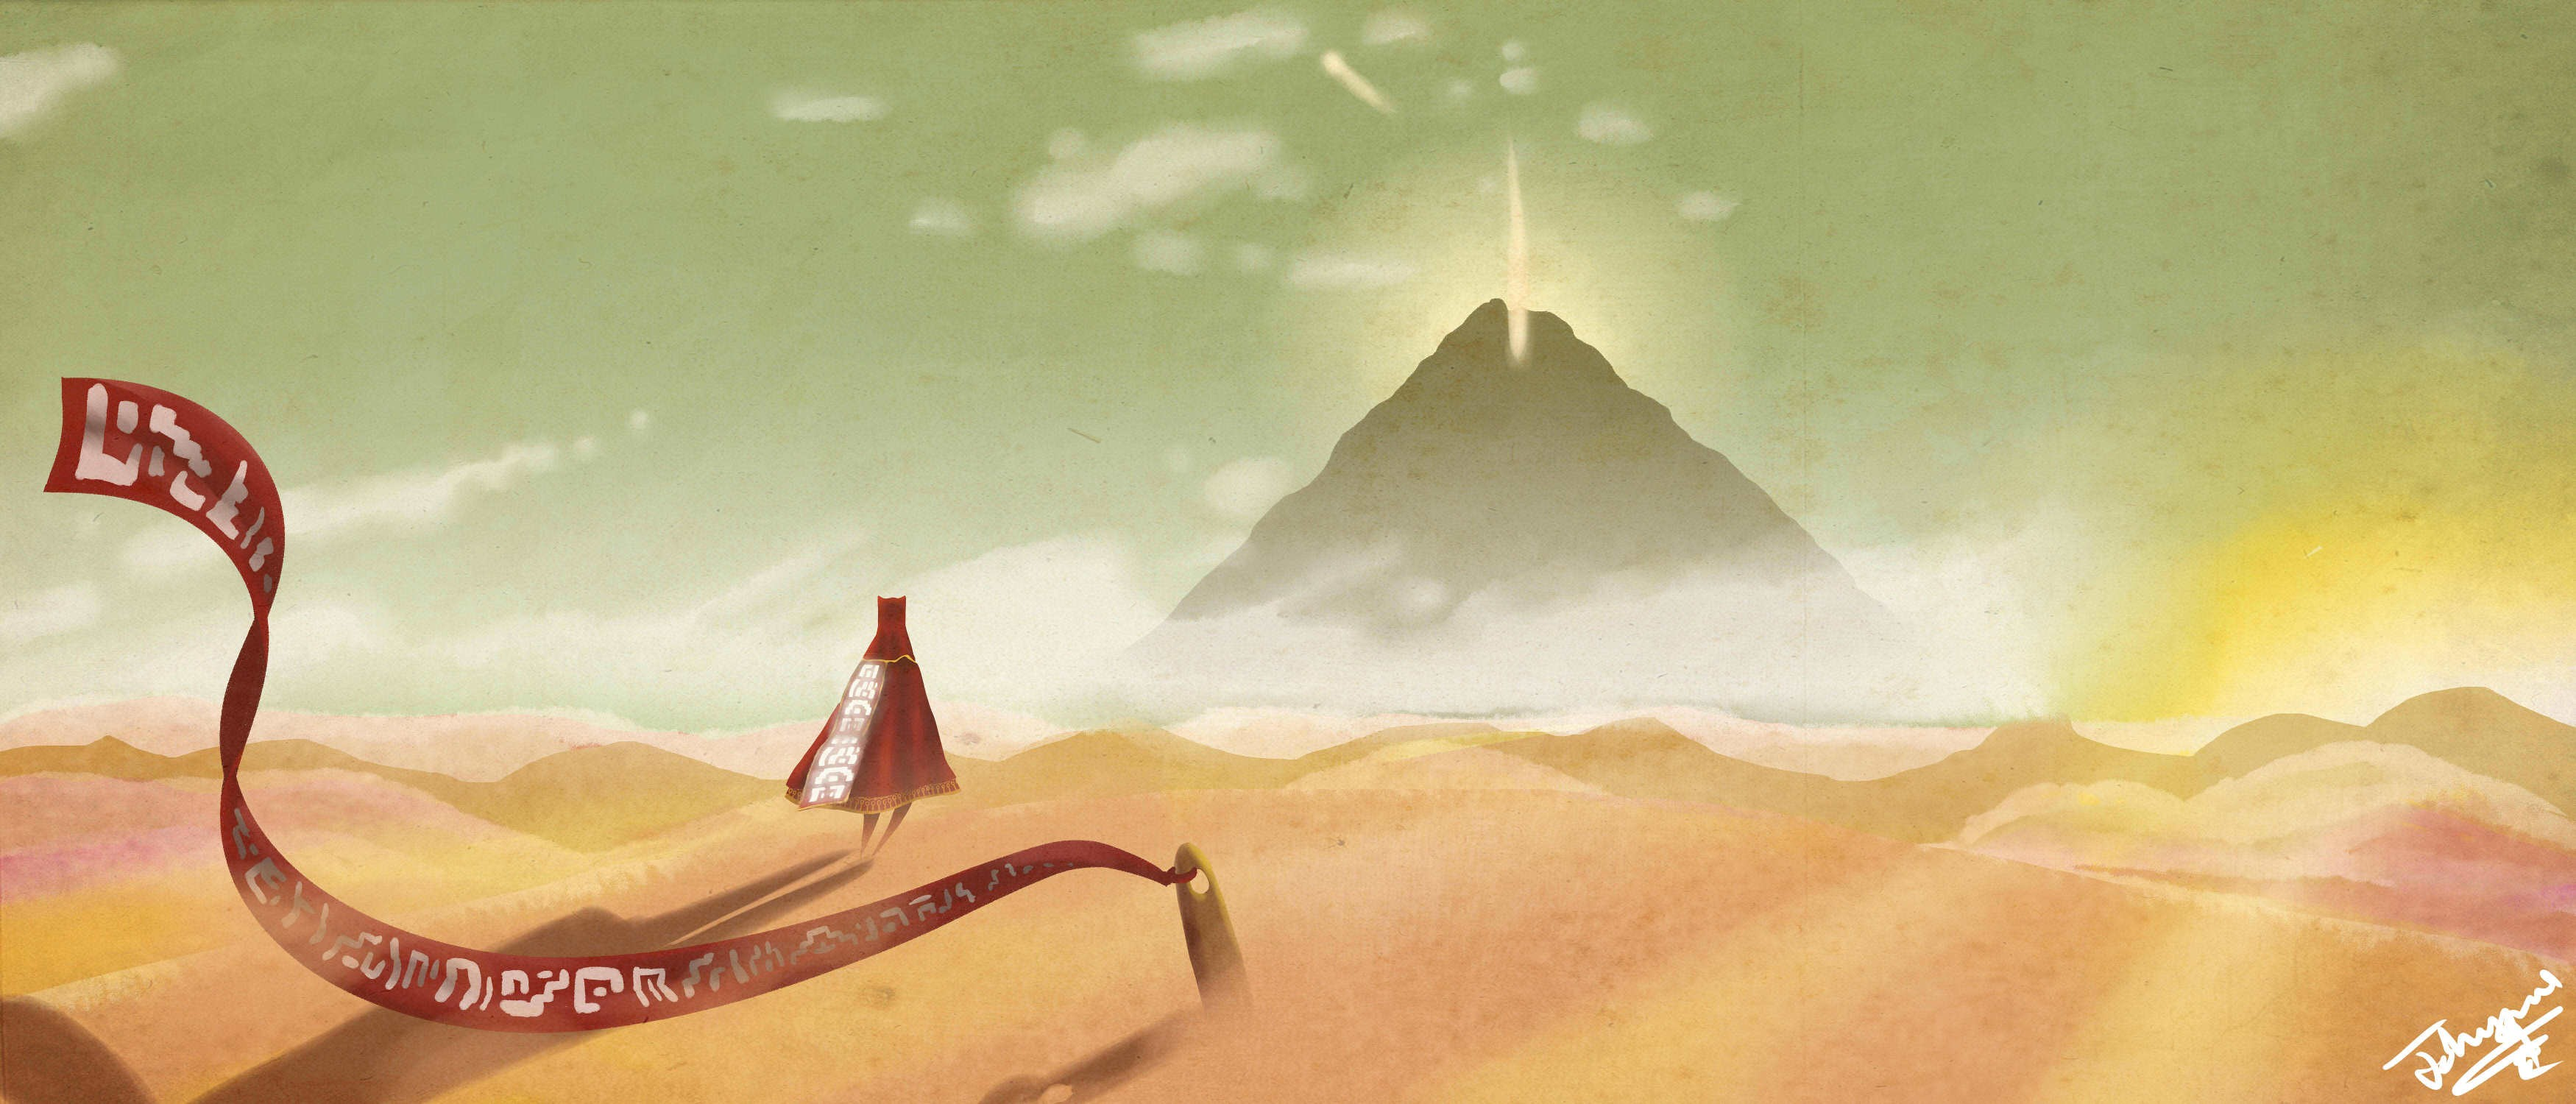 Journey game video games wallpaper 3500x1500